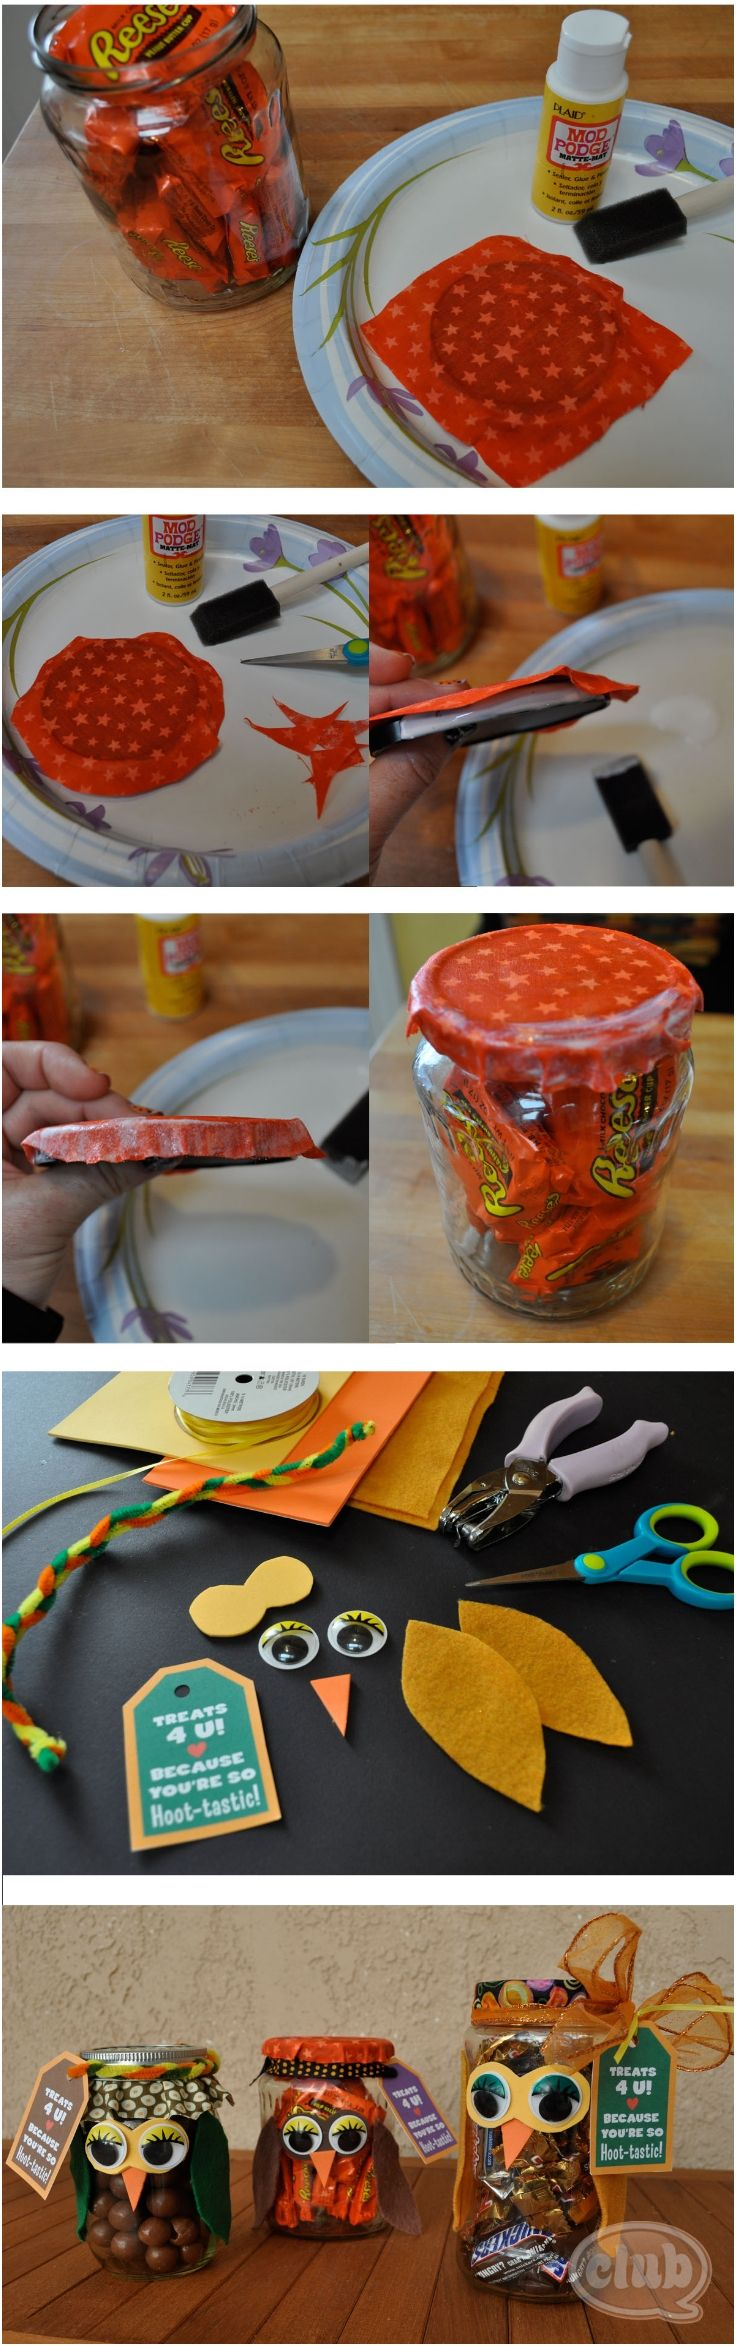 Owl Candy Jars DIY using Recycled Jars & Leftover Halloween Candy